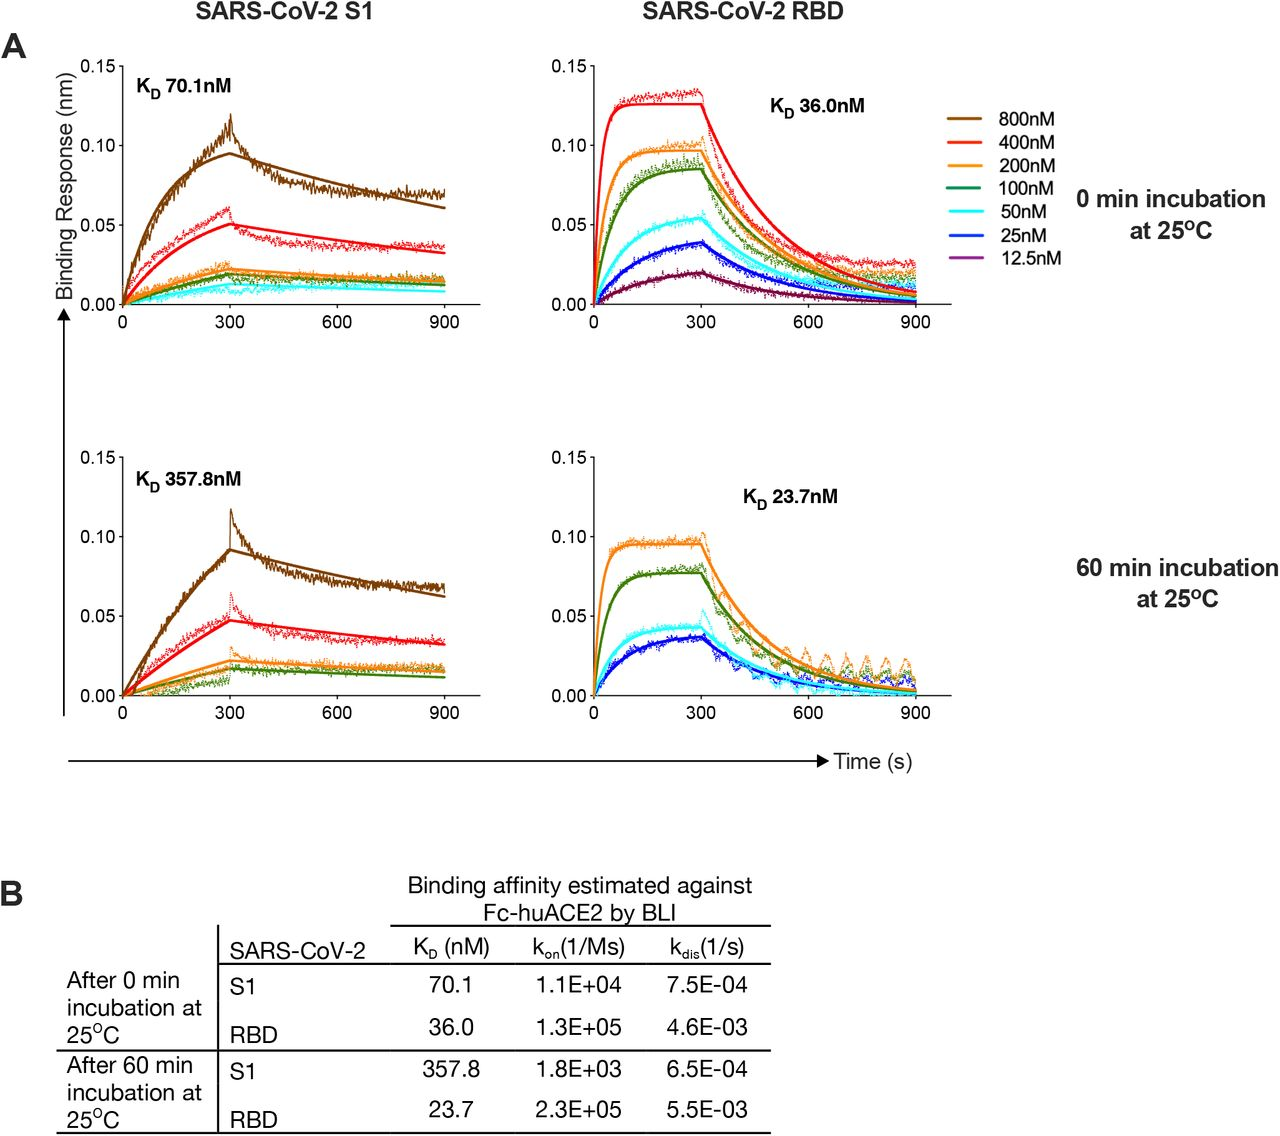 Analyzing SARS-CoV-2 RBD and S1 proteins affinities to human ACE2 (hACE2) proteins using biolayer interferometry (BLI). (A) Bio-Layer Interferometry sensograms of the binding of SARS-CoV-2 S1 and RBD proteins to immobilized Fc-human ACE2, after incubation of the analytes at 25°C for 0and 60 minutes. The traces represent BLI response curves for SARS-CoV-2 proteins serially diluted from 800nM to 12.5nM, as indicated. Dotted lines show raw response values, while bold solid lines show the fitted trace. Association and dissociation phases were monitored for 300s and 600s, respectively. The data was globally fit using a 1:1 binding model to estimate binding affinity. (B) Binding affinity specifications of S1 and RBD proteins against hu-ACE2.